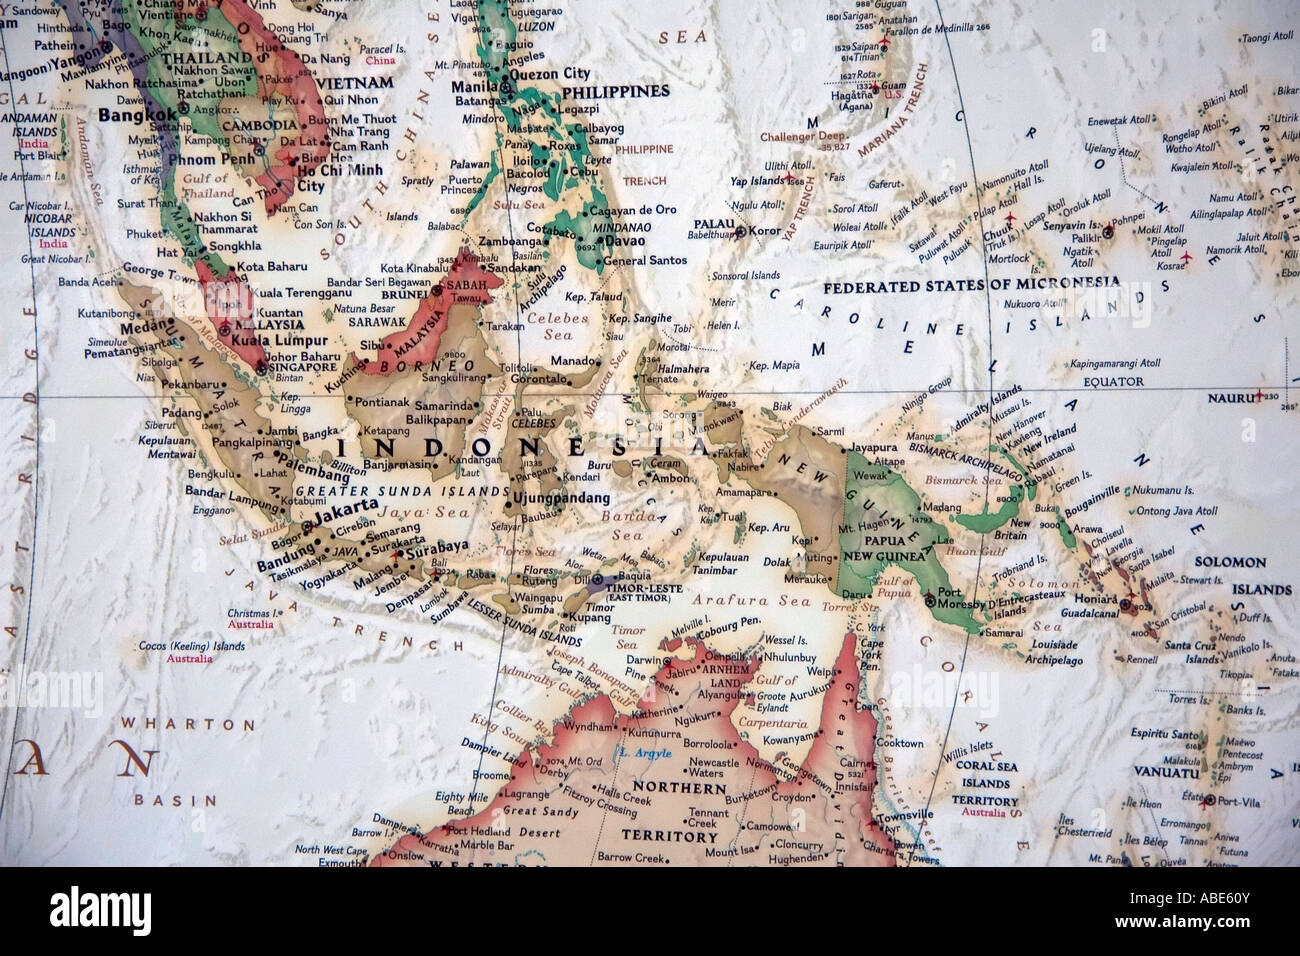 a view of indonesia and the surrounding region on a fine detailed and colorful world